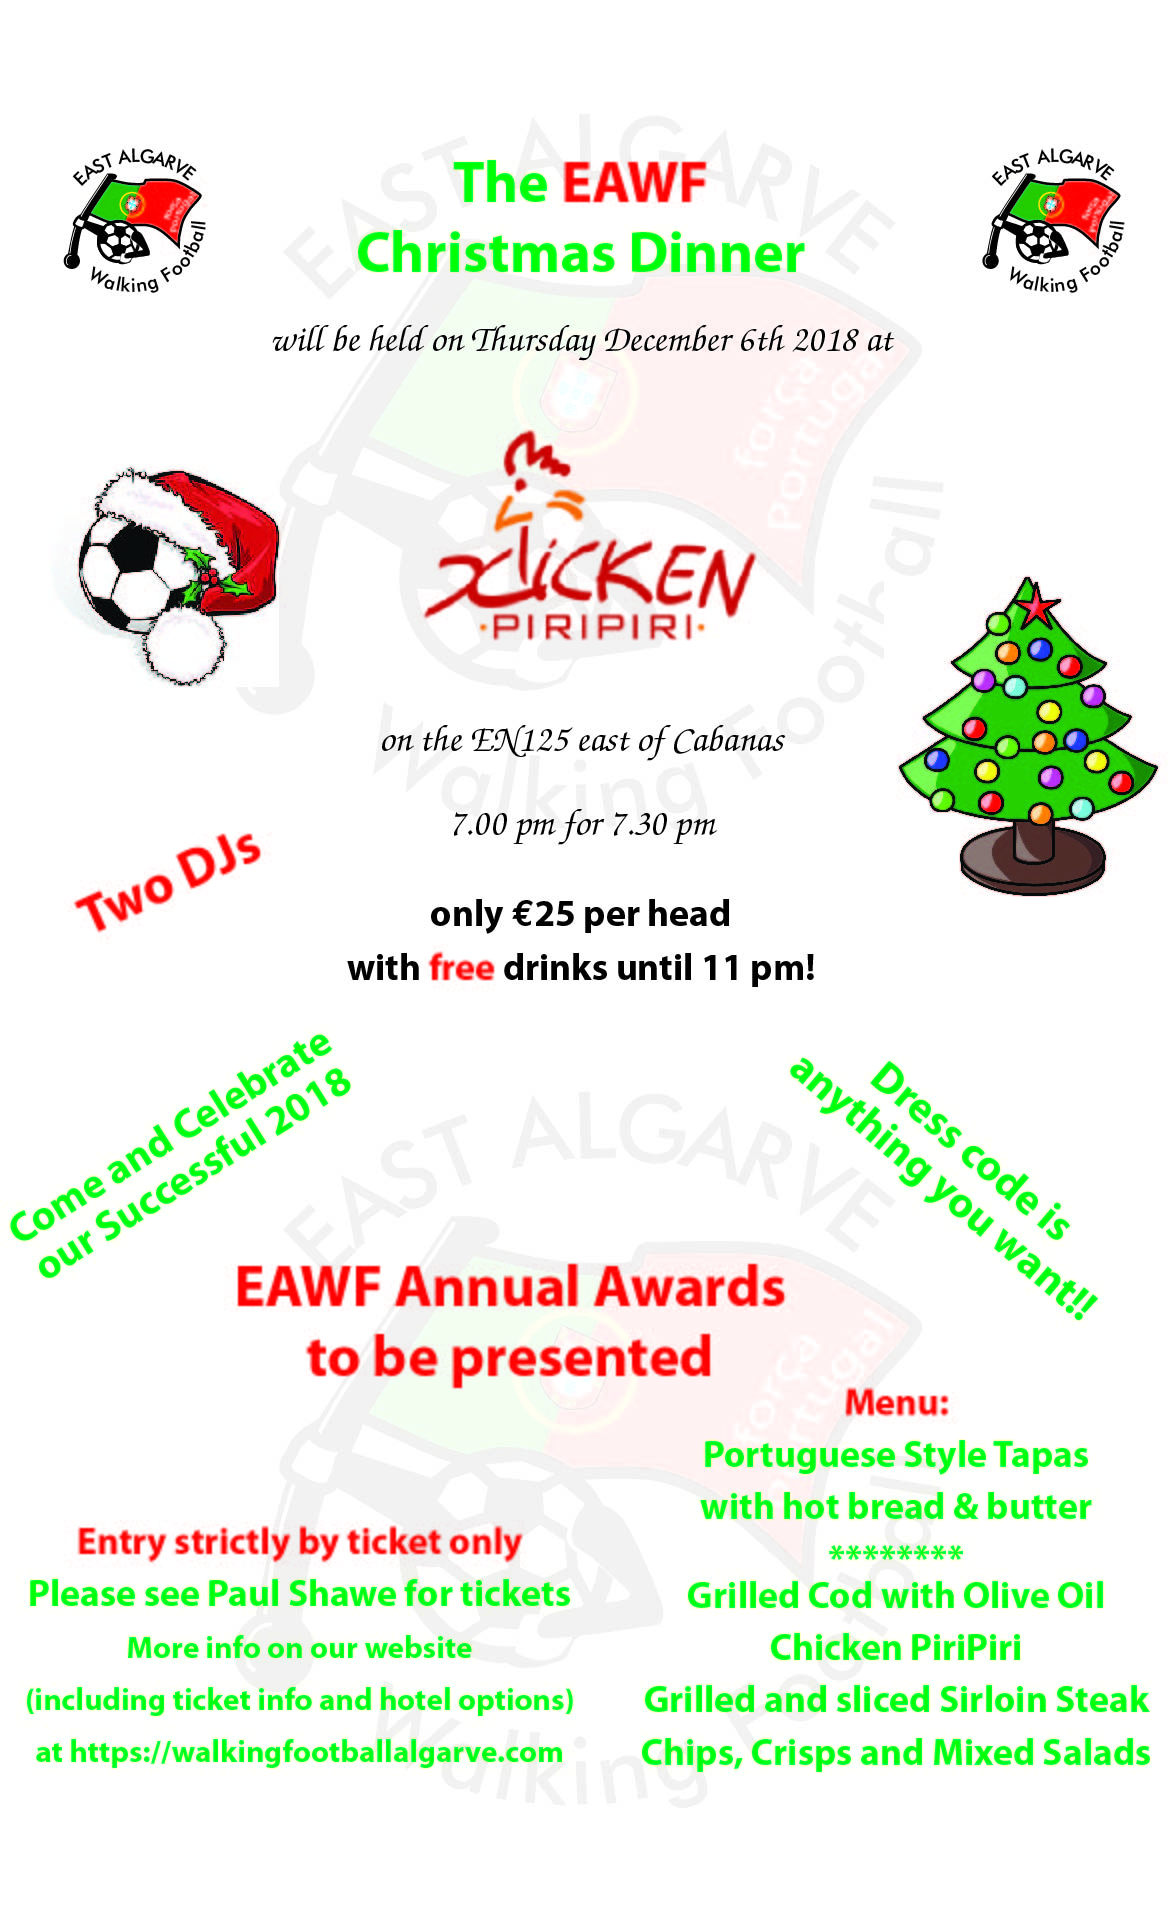 EAWF Xmas Dinner 2018 - East Algarve Walking football